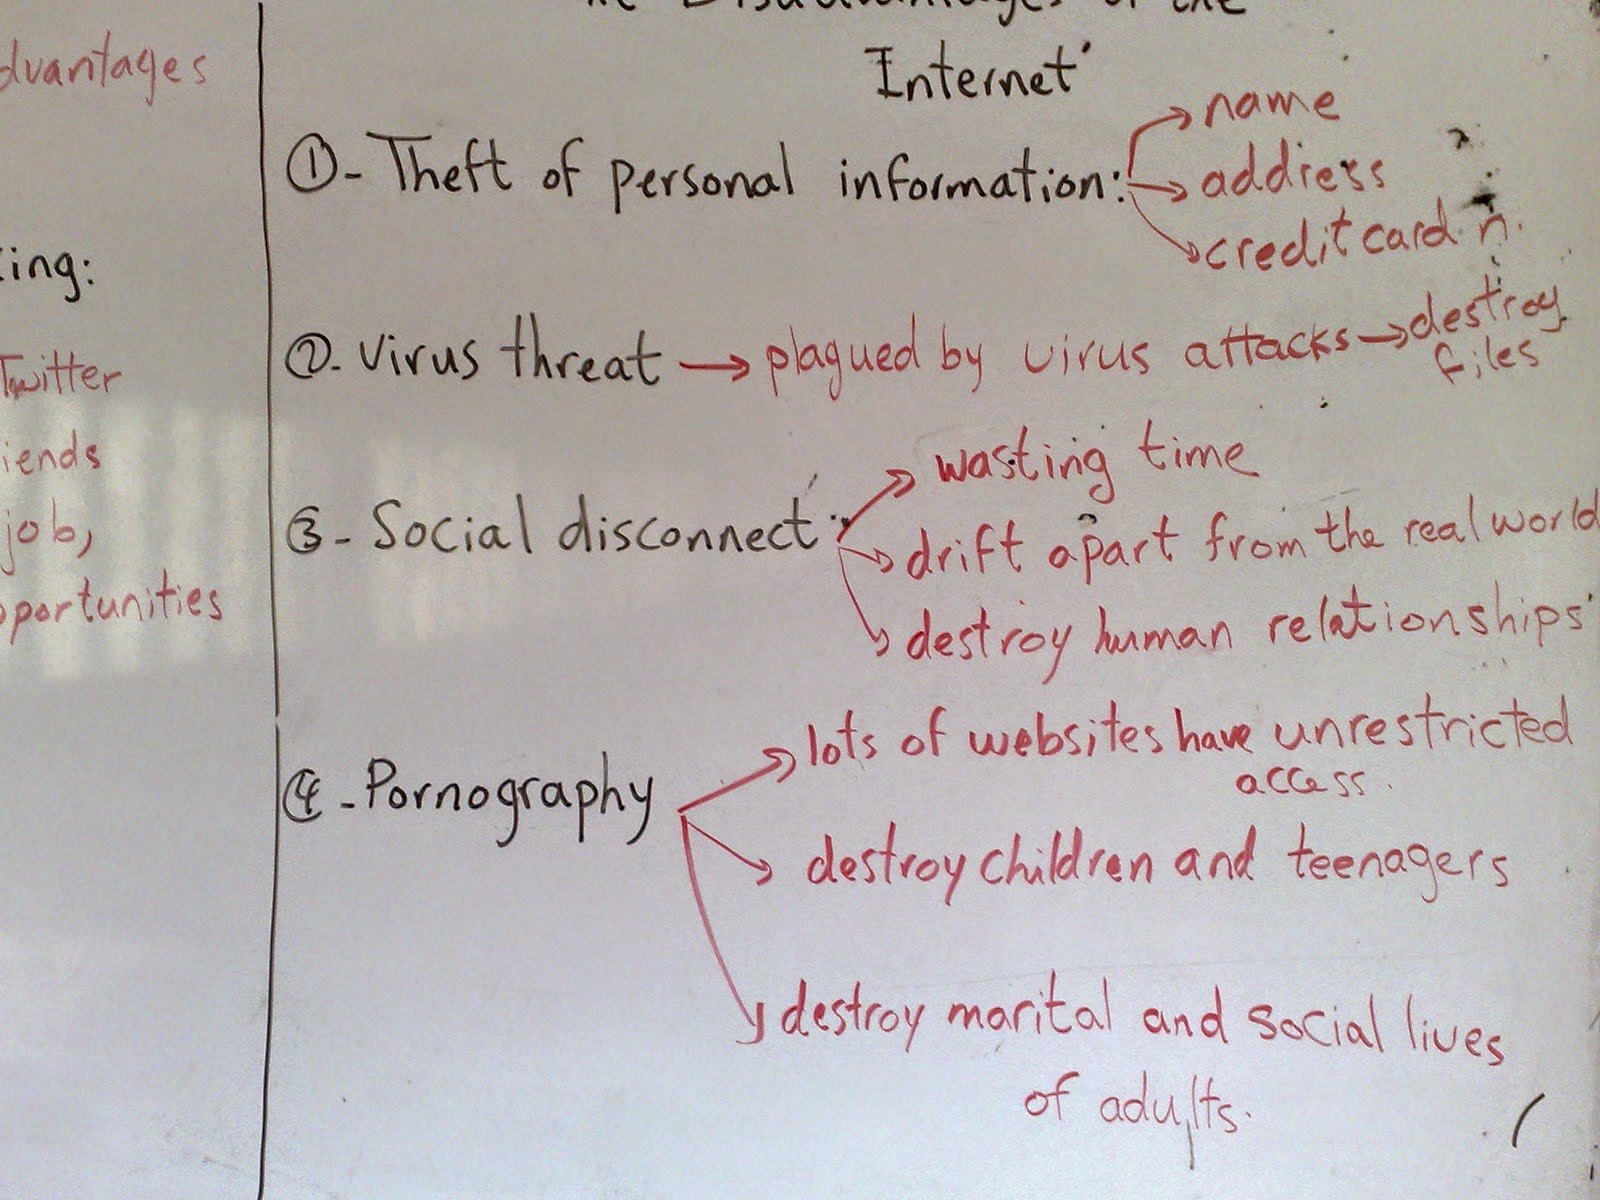 Compare & Contrast Essay: Advantages and Disadvantages of the Internet